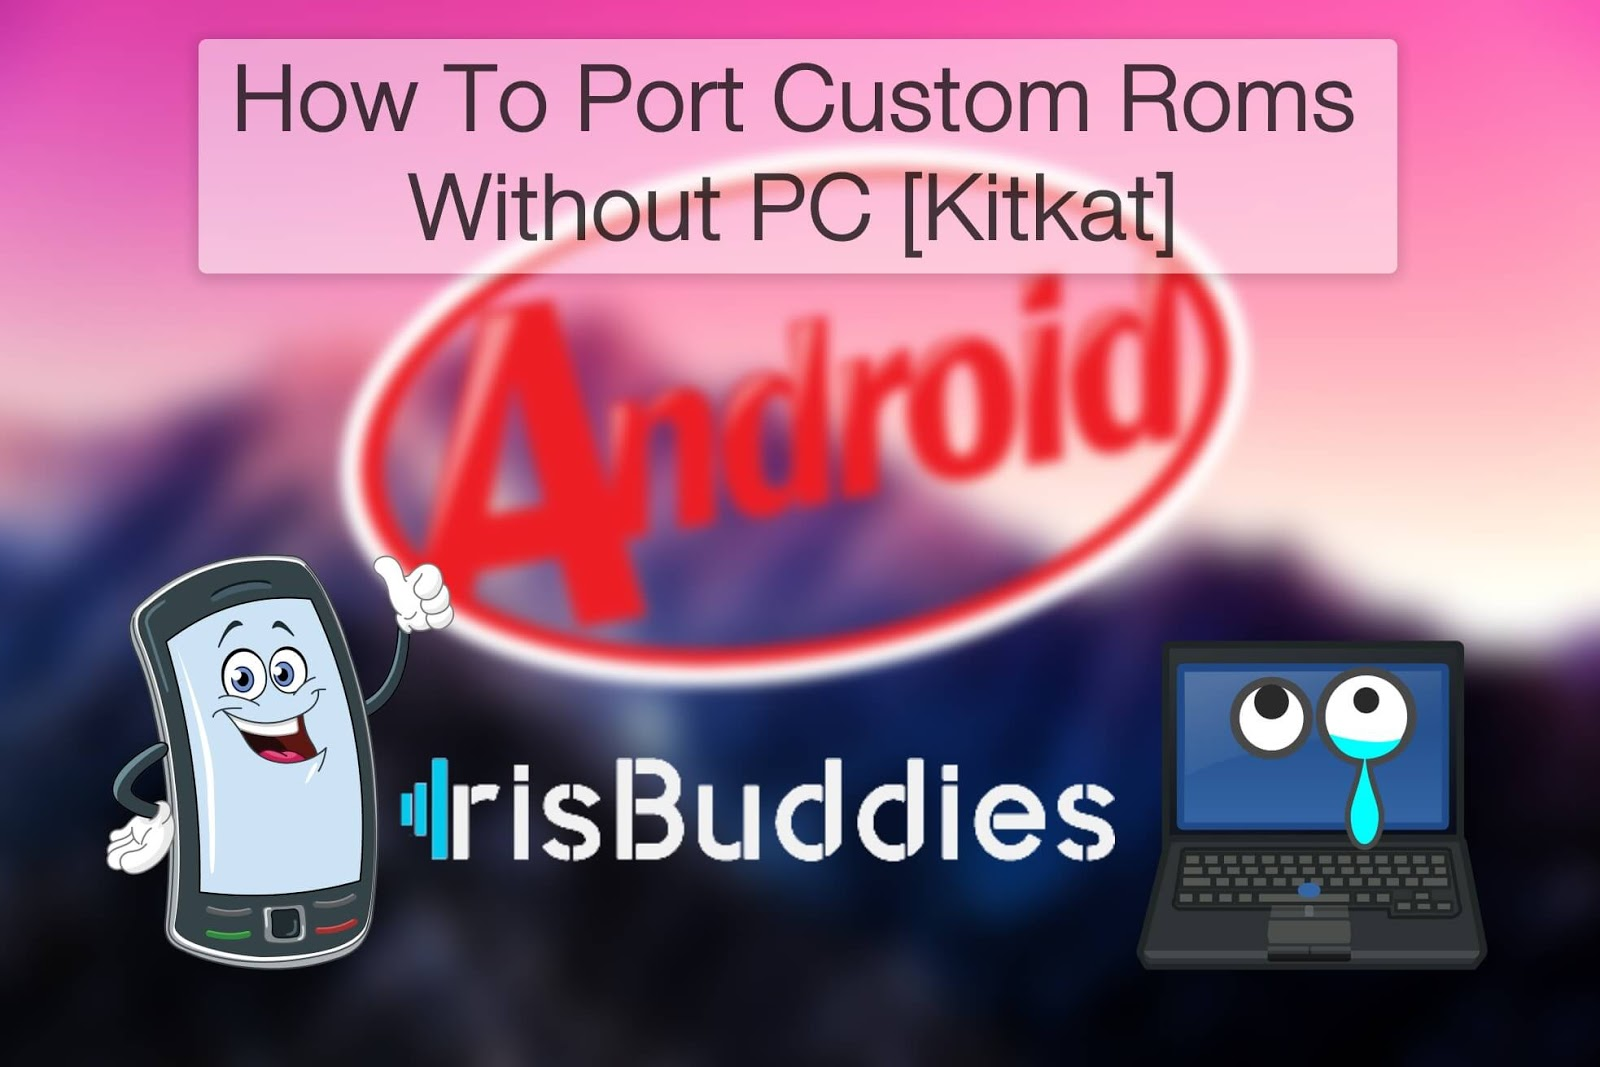 How To Port Custom Roms Without PC On Your Mobile [Kitkat] | Iris